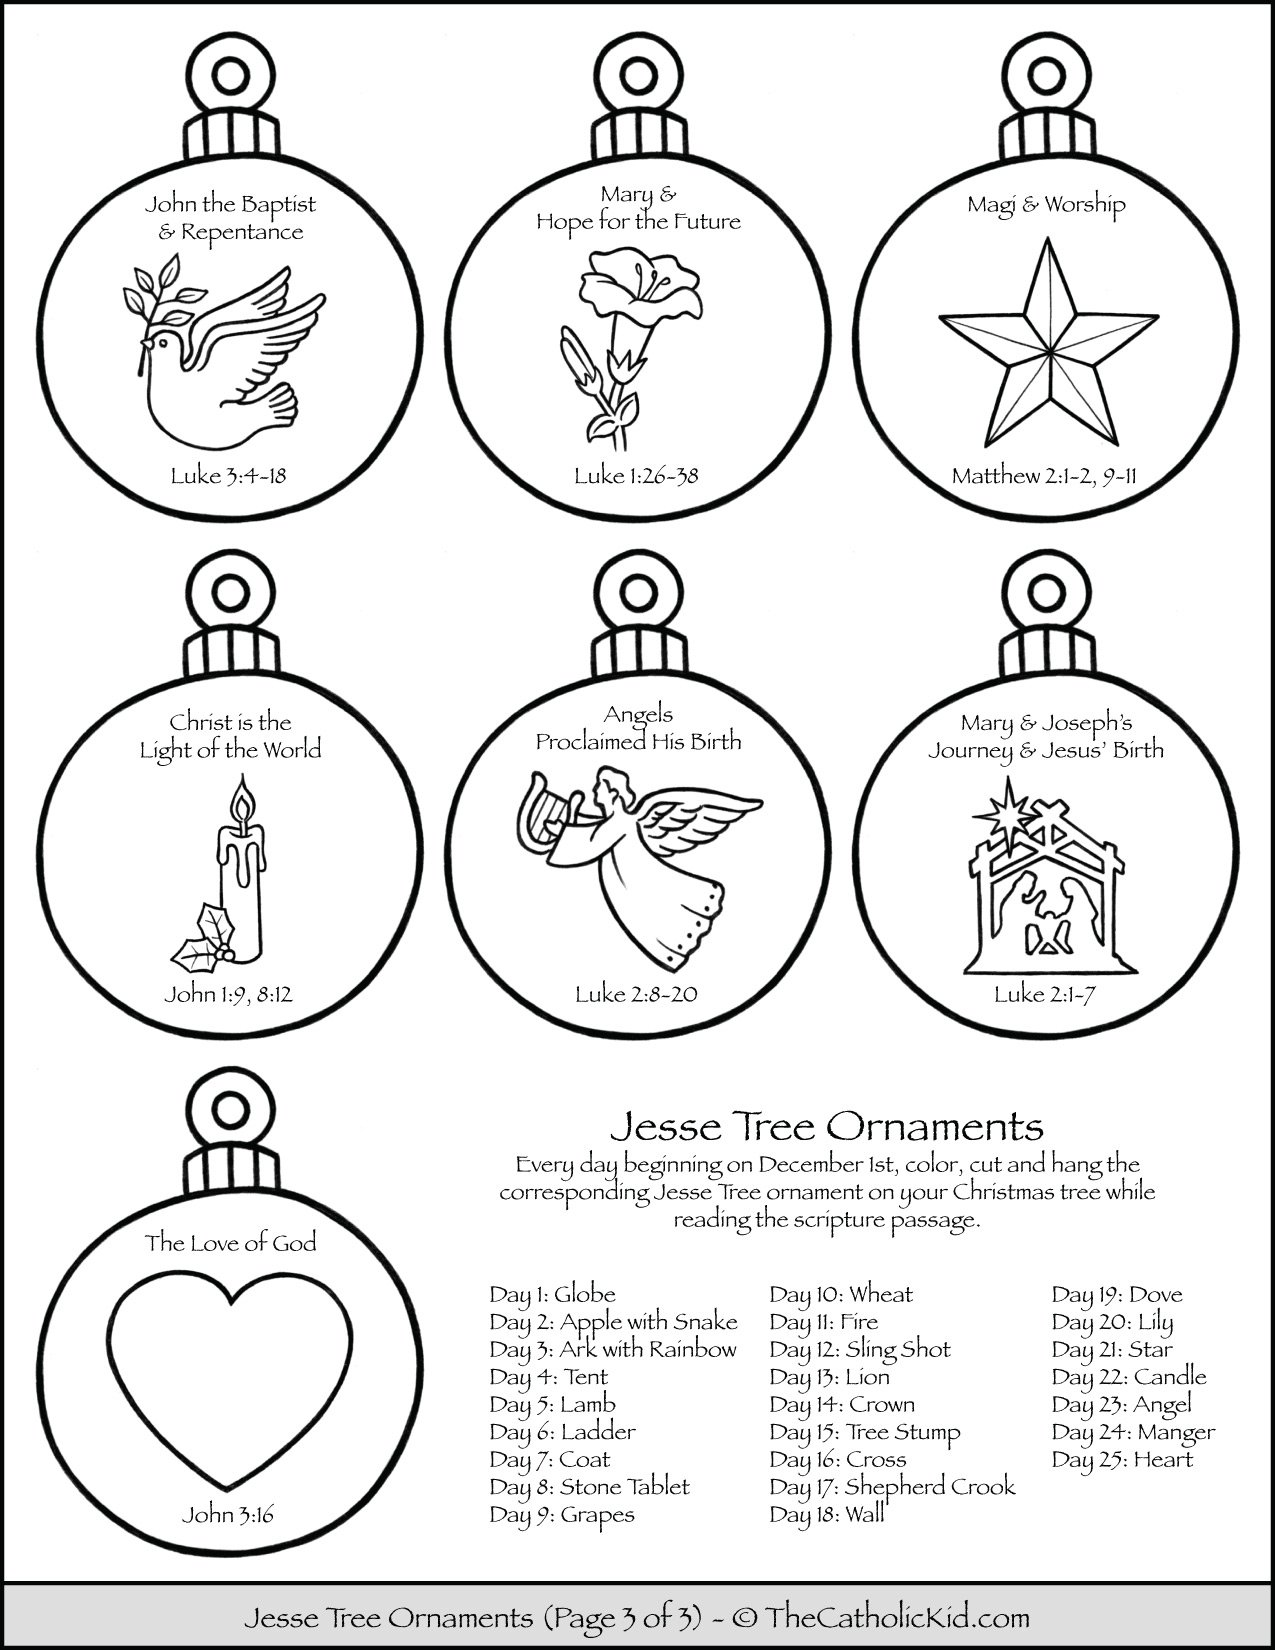 Jesse Tree Ornaments Printable Coloring Page 3